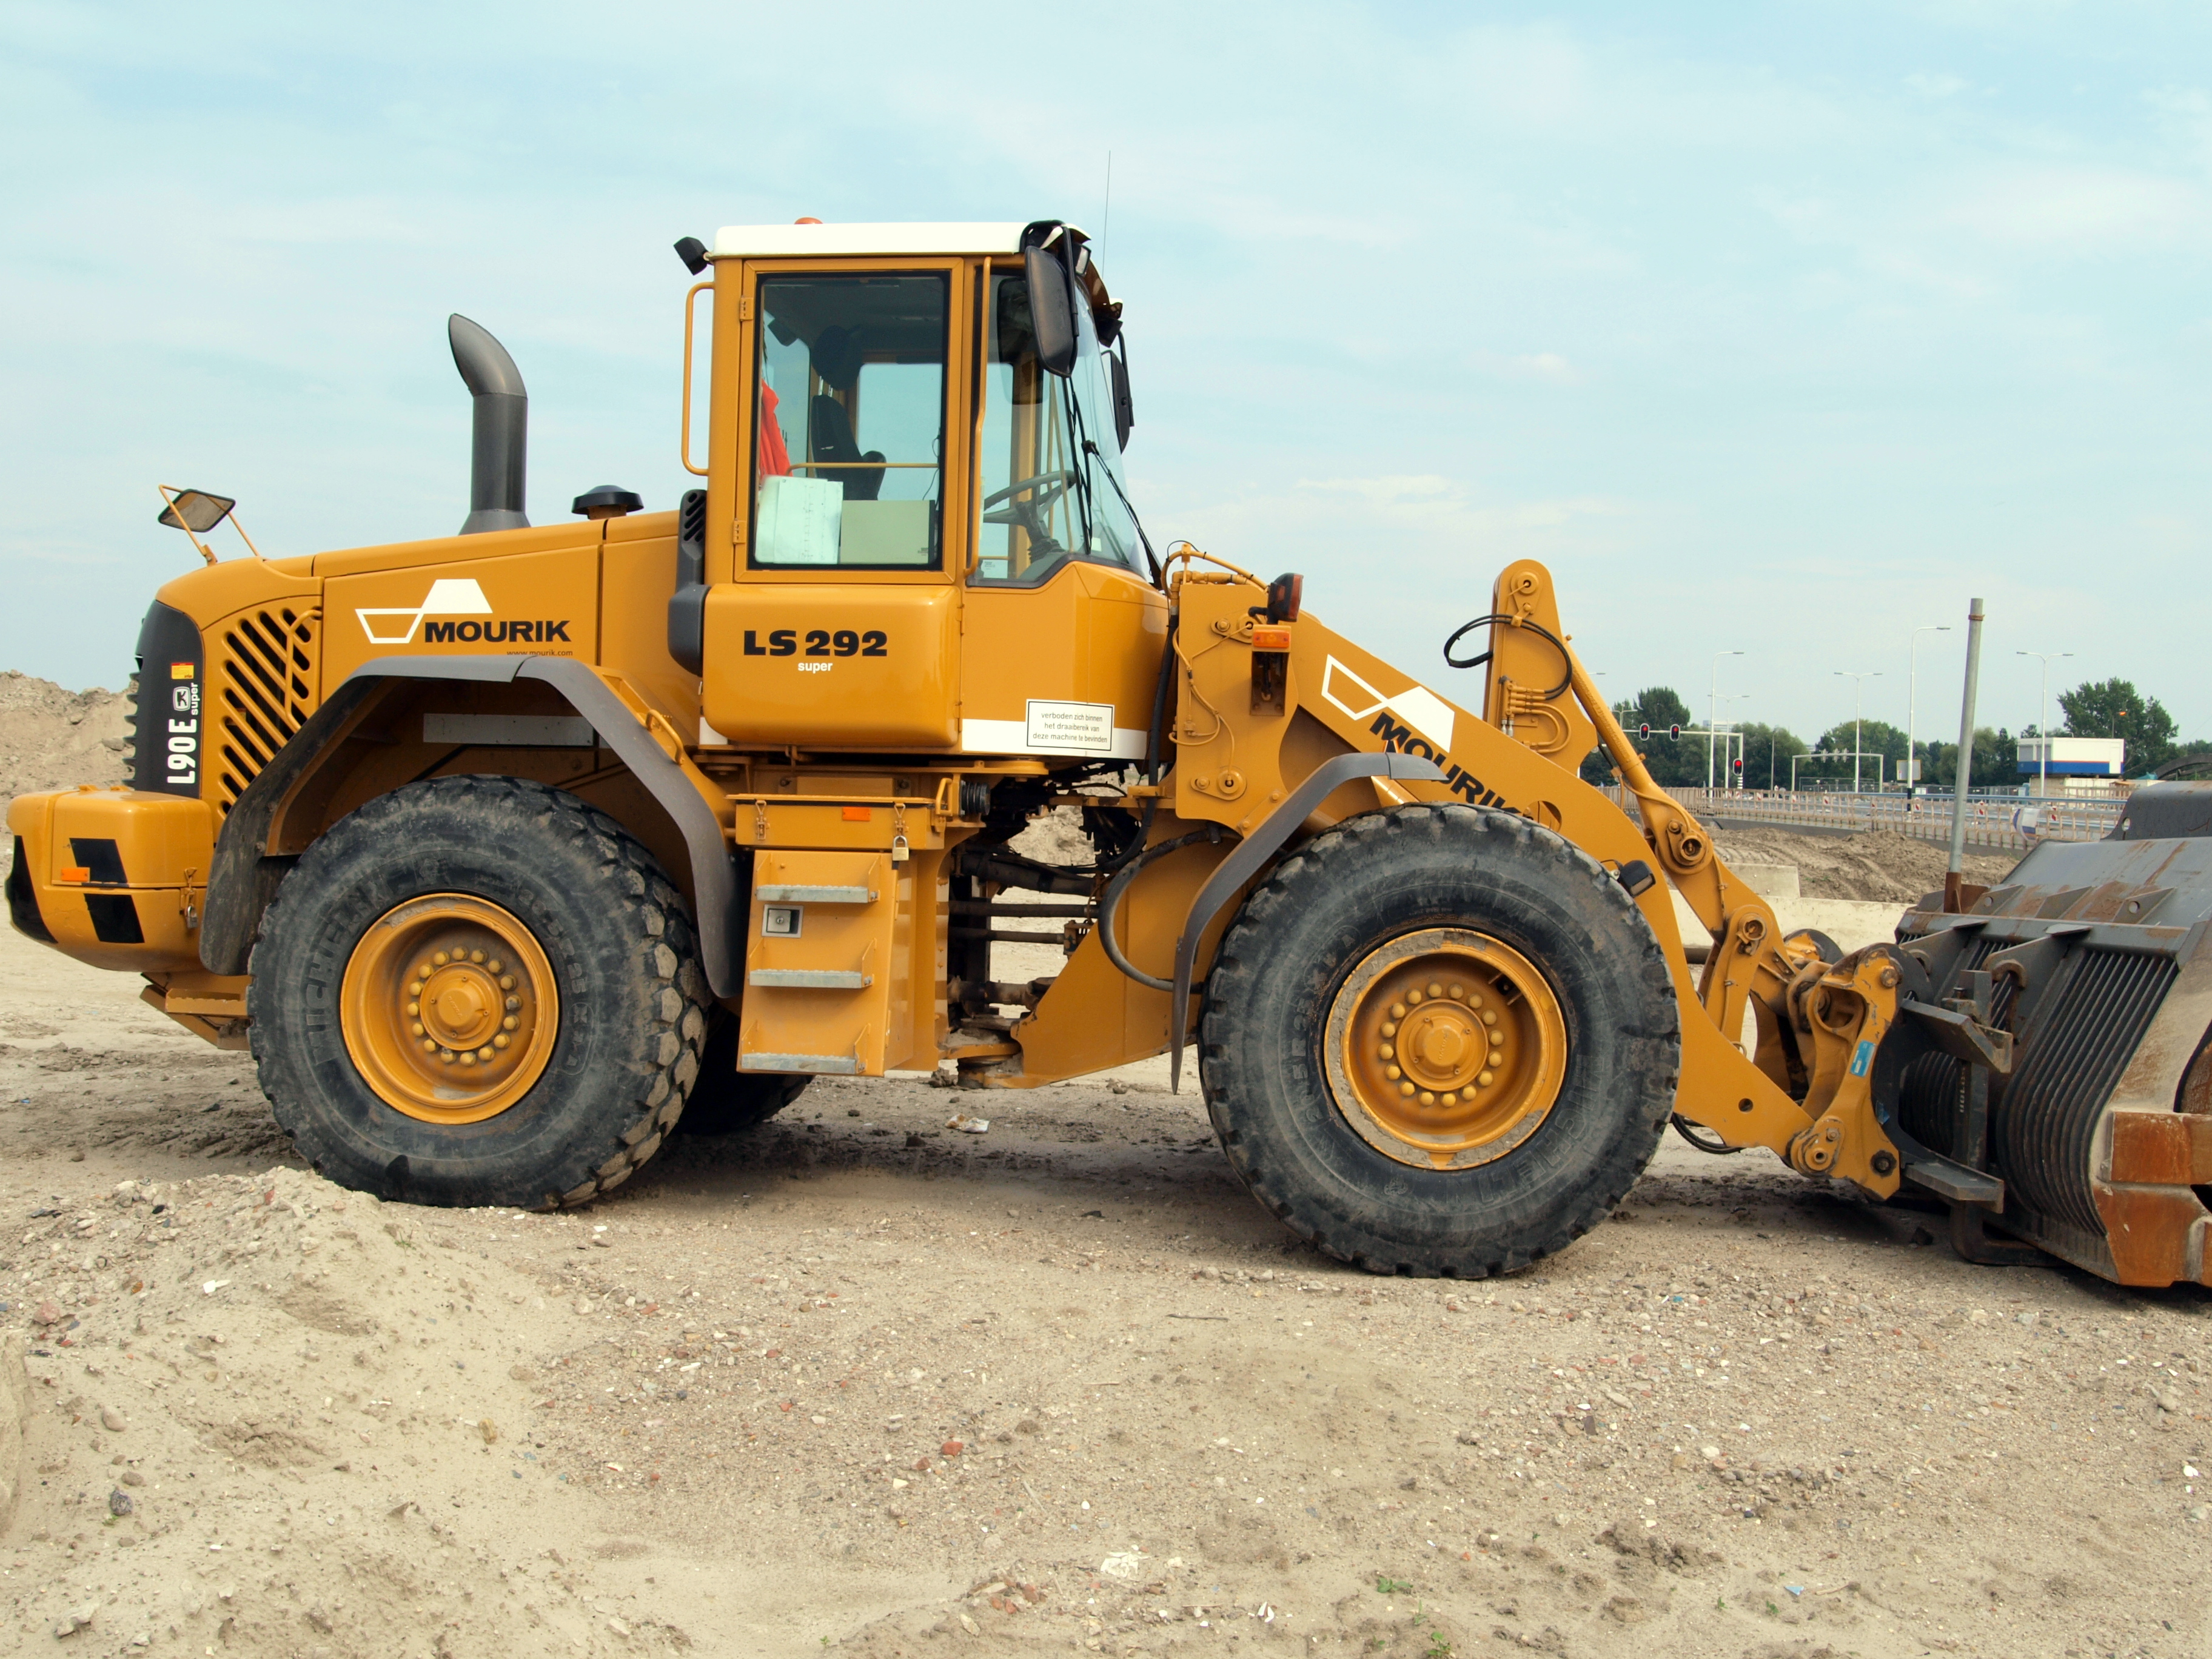 File Volvo L90e Owned By Mourik Ls 292 P1 Jpg